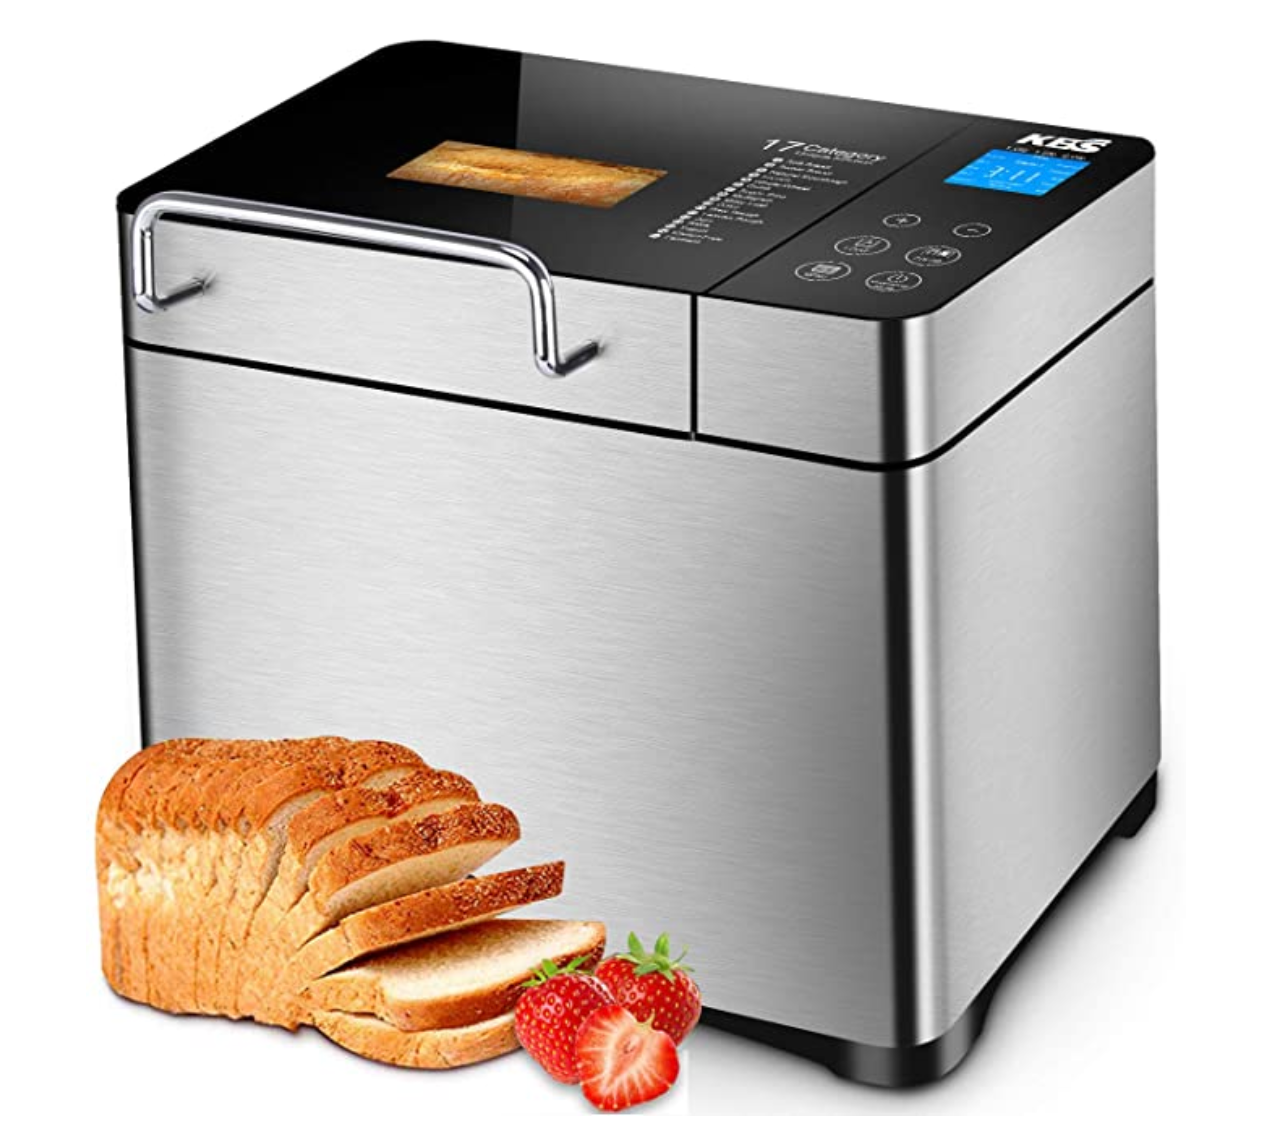 *NEW* Bread Machine Maker Kit on Sale, 2LB 17-in-1 Programmable XL w/ Fruit Nut